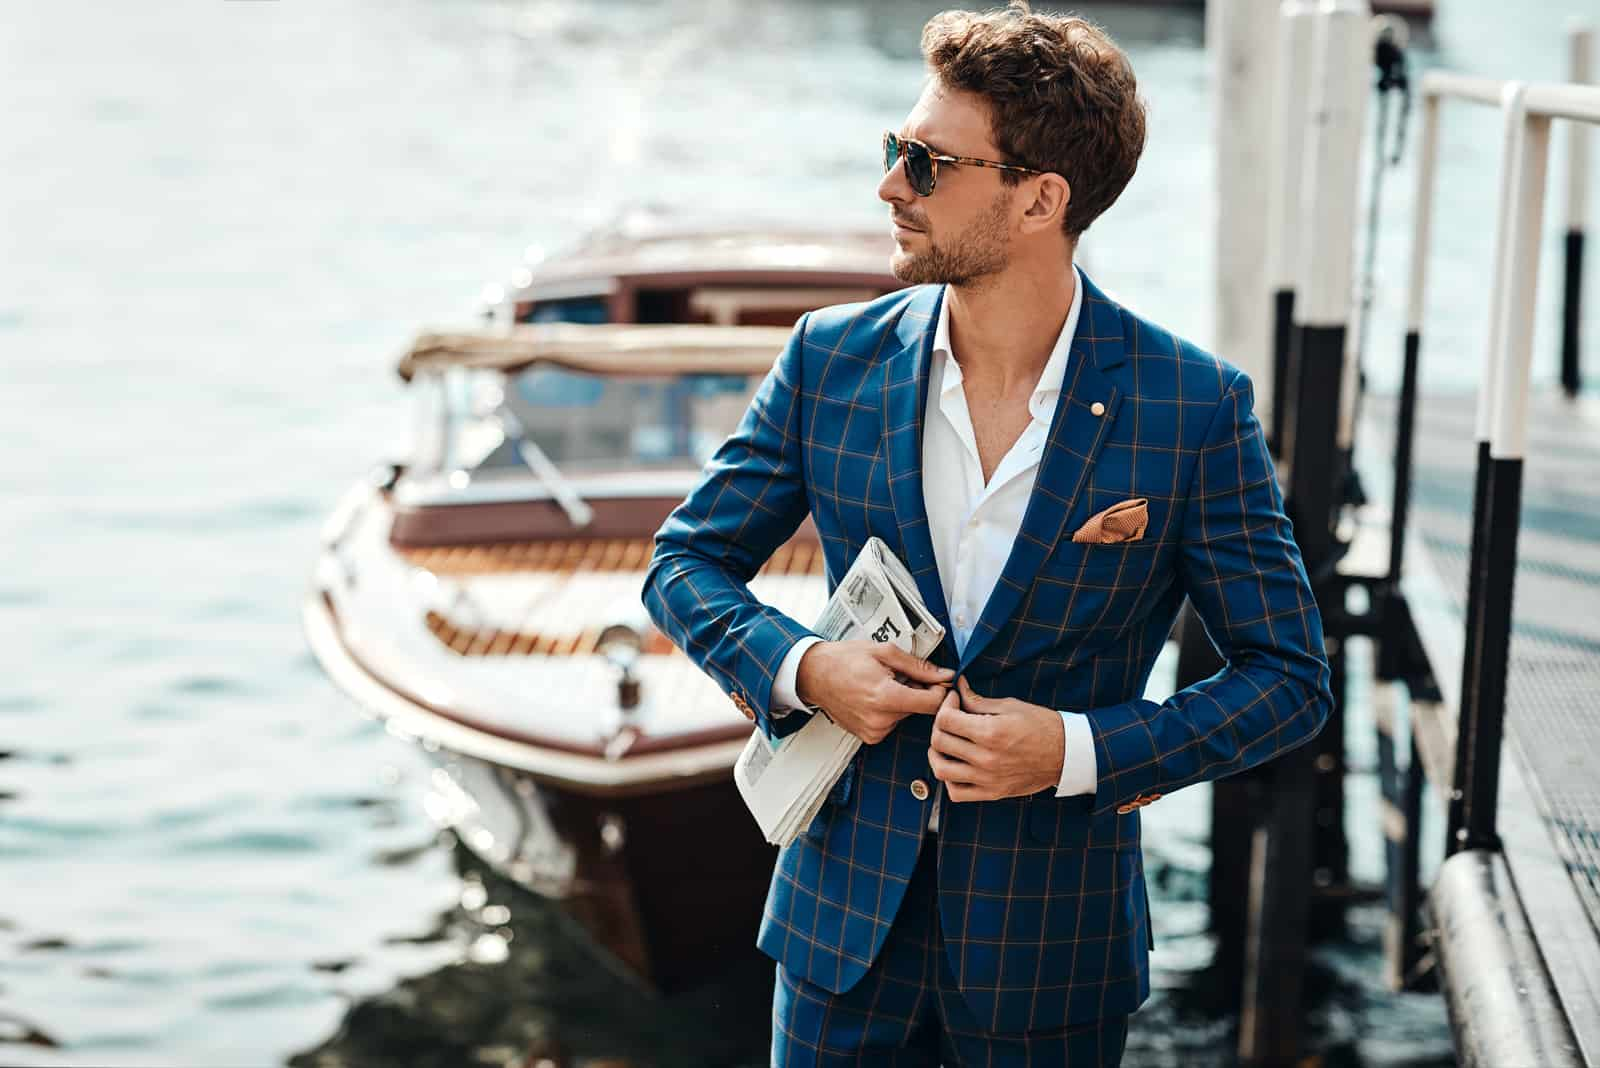 Young handsome man in classic suit